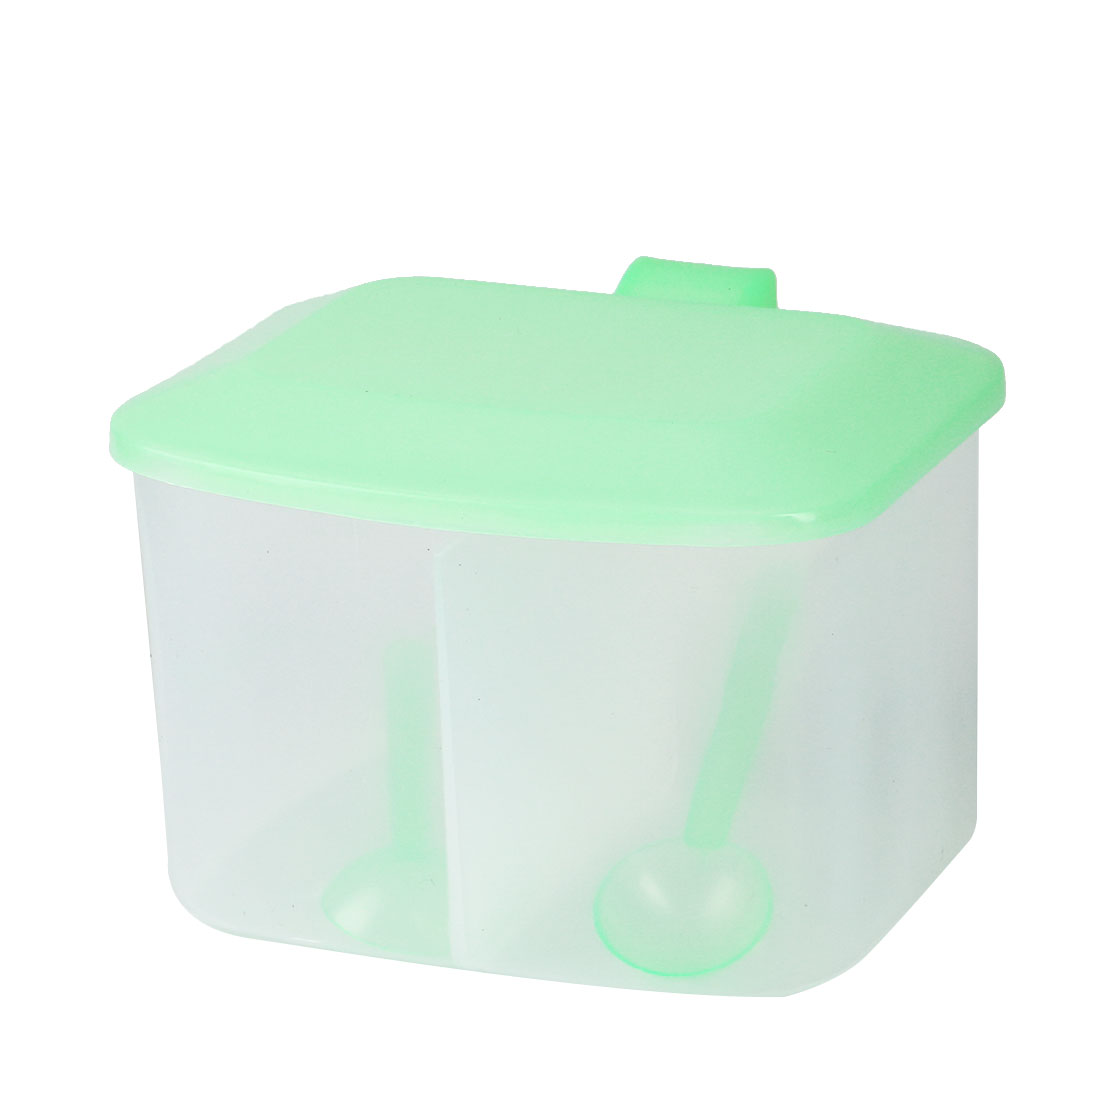 Household Kitchen Plastic Rectangular Single Compartment Salt Seasoning Box Green